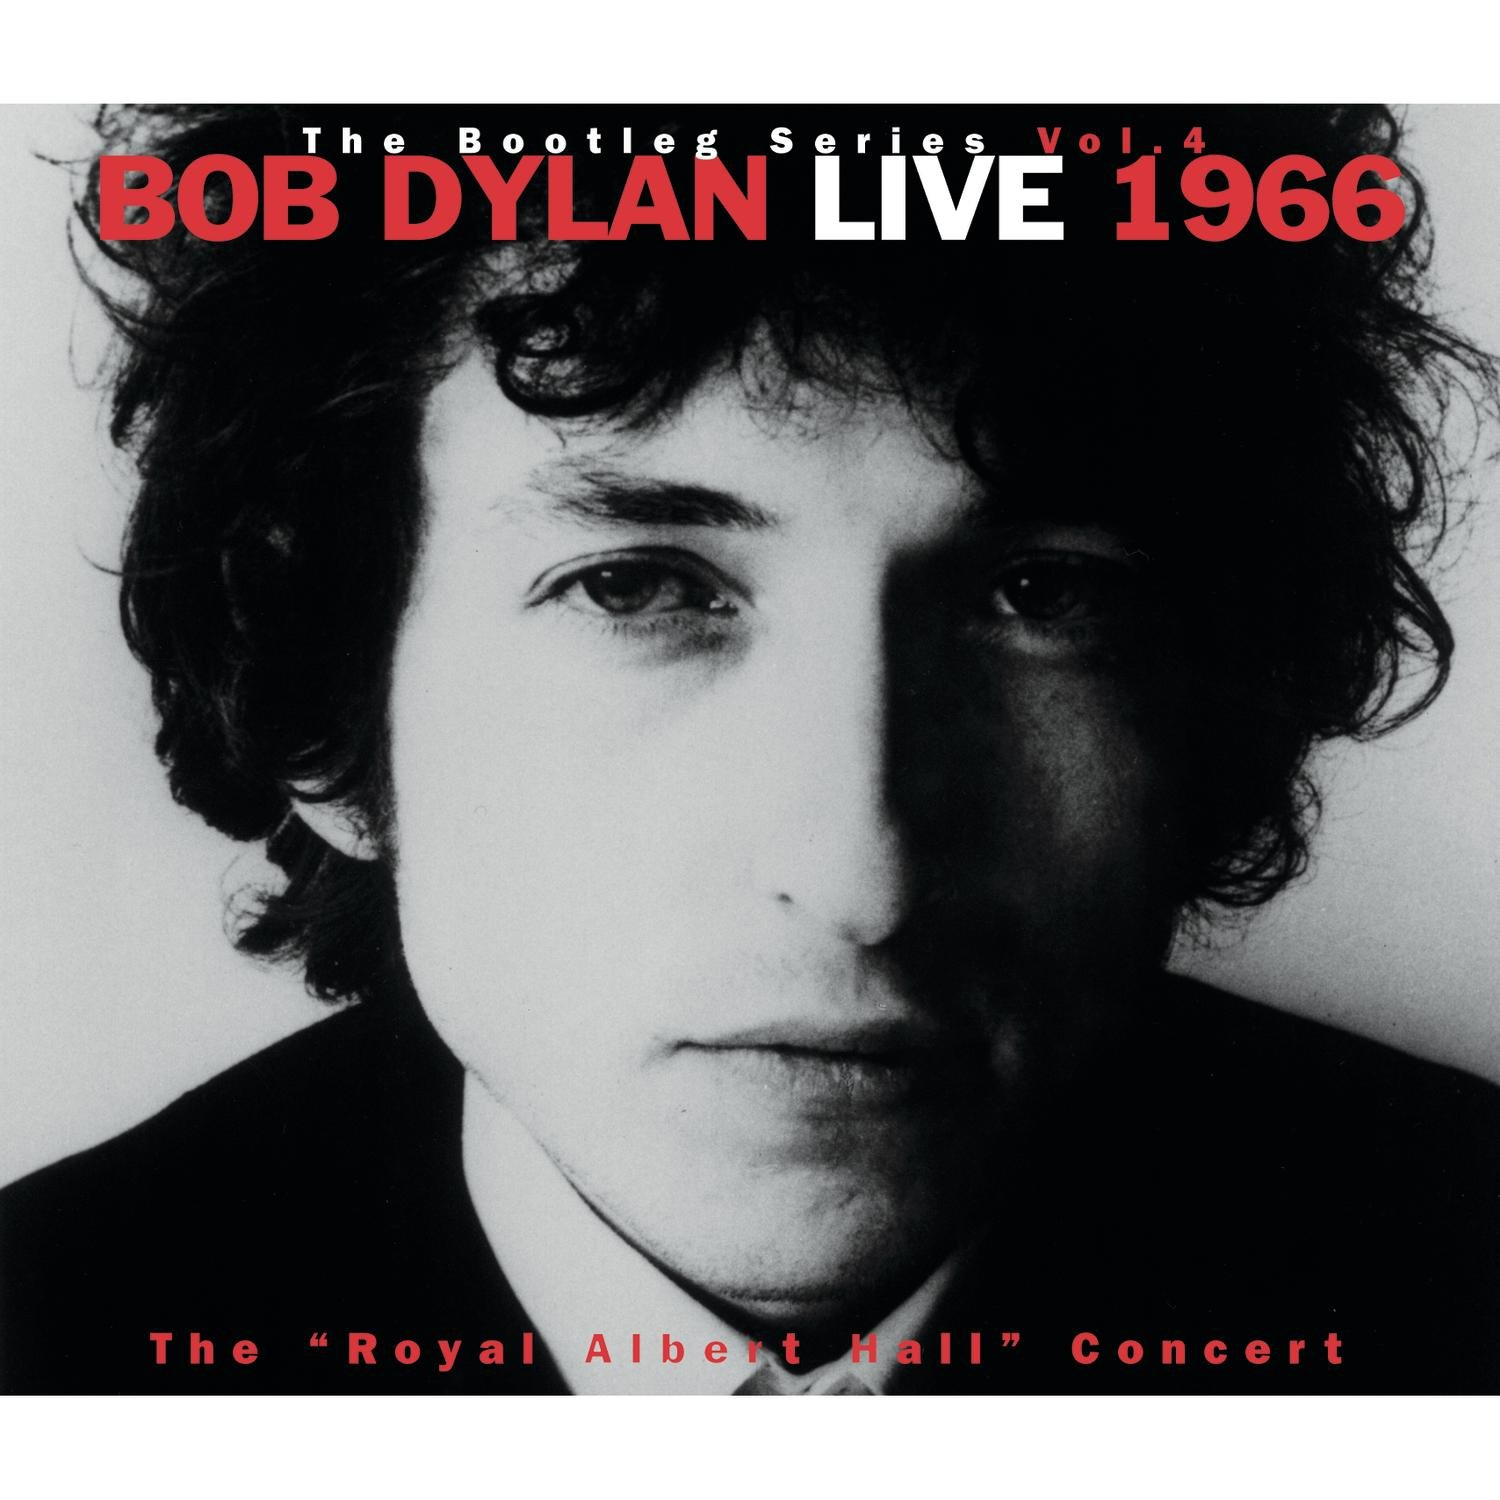 The Bootleg Series, Vol. 4: Bob Dylan Live, 1966: The ''Royal Albert Hall Concert'' by Columbia/Legacy